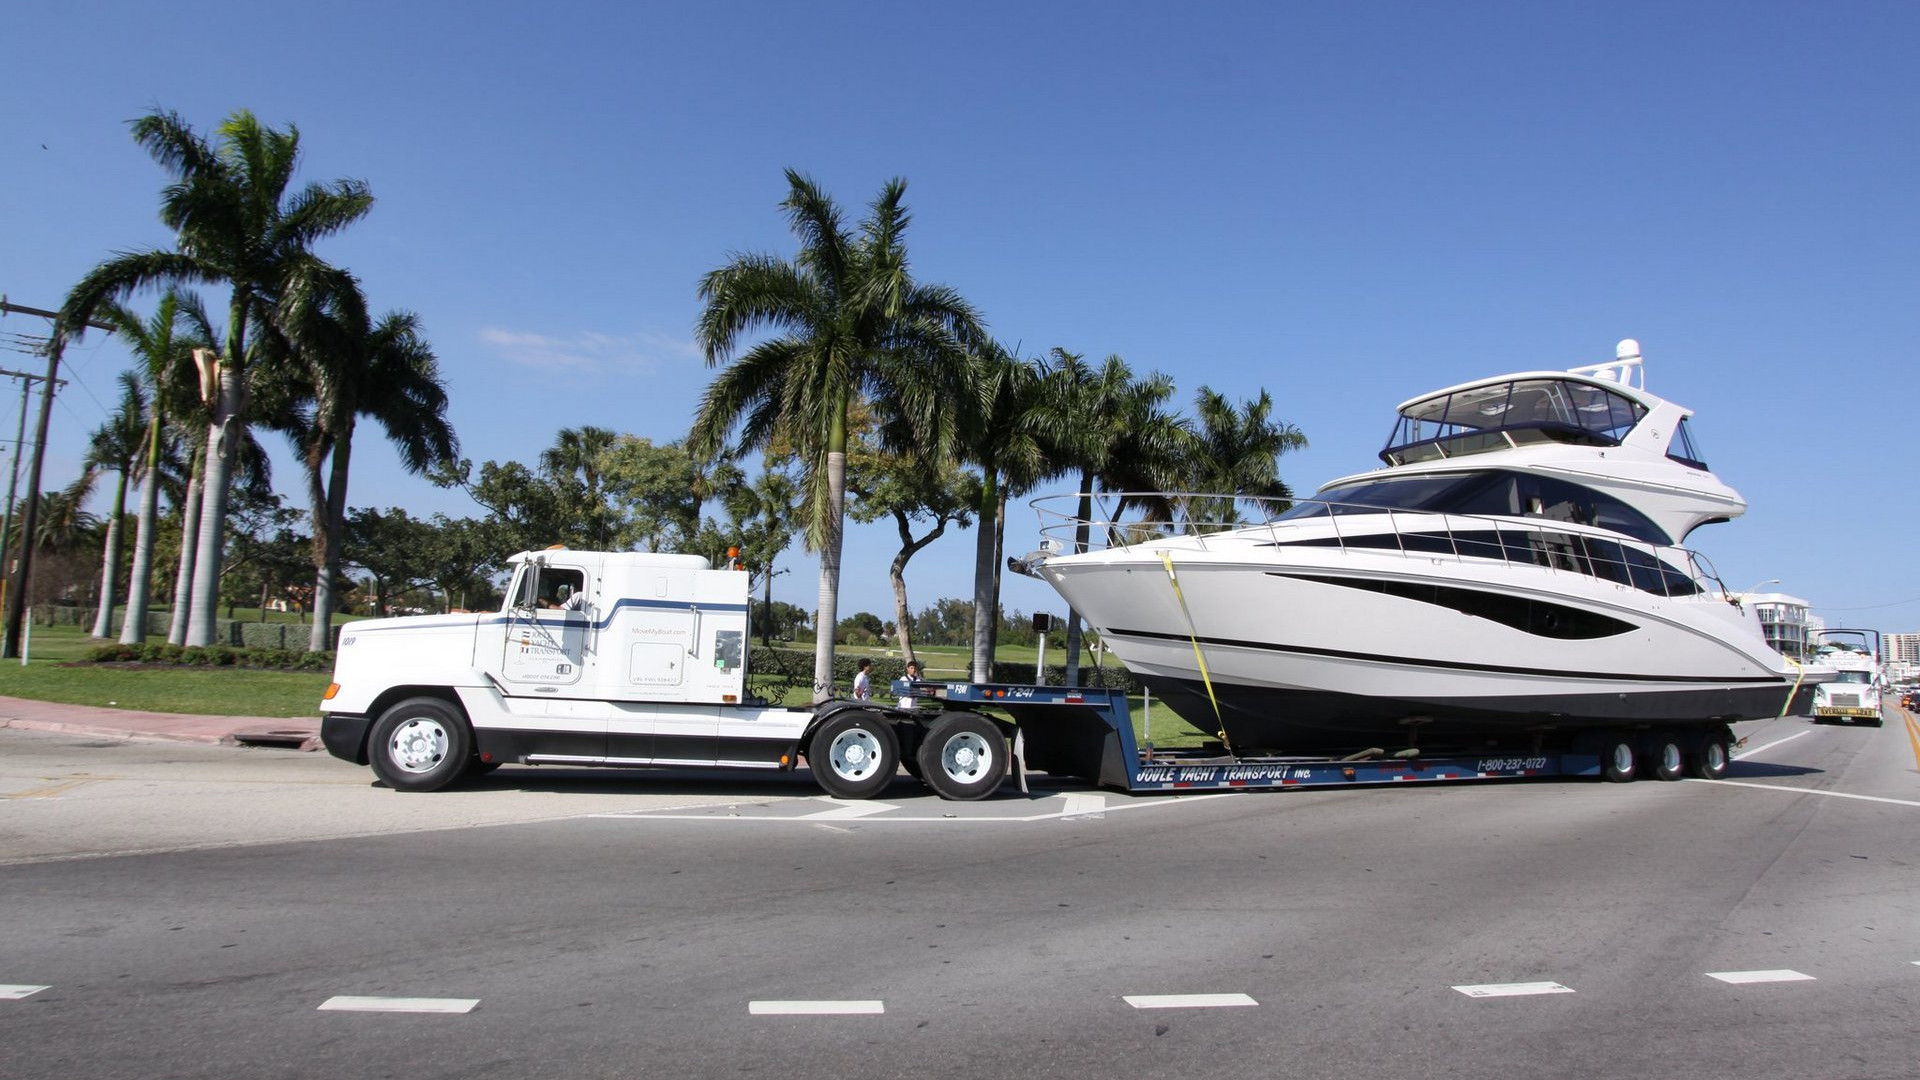 Joule Yacht and Boat Transport